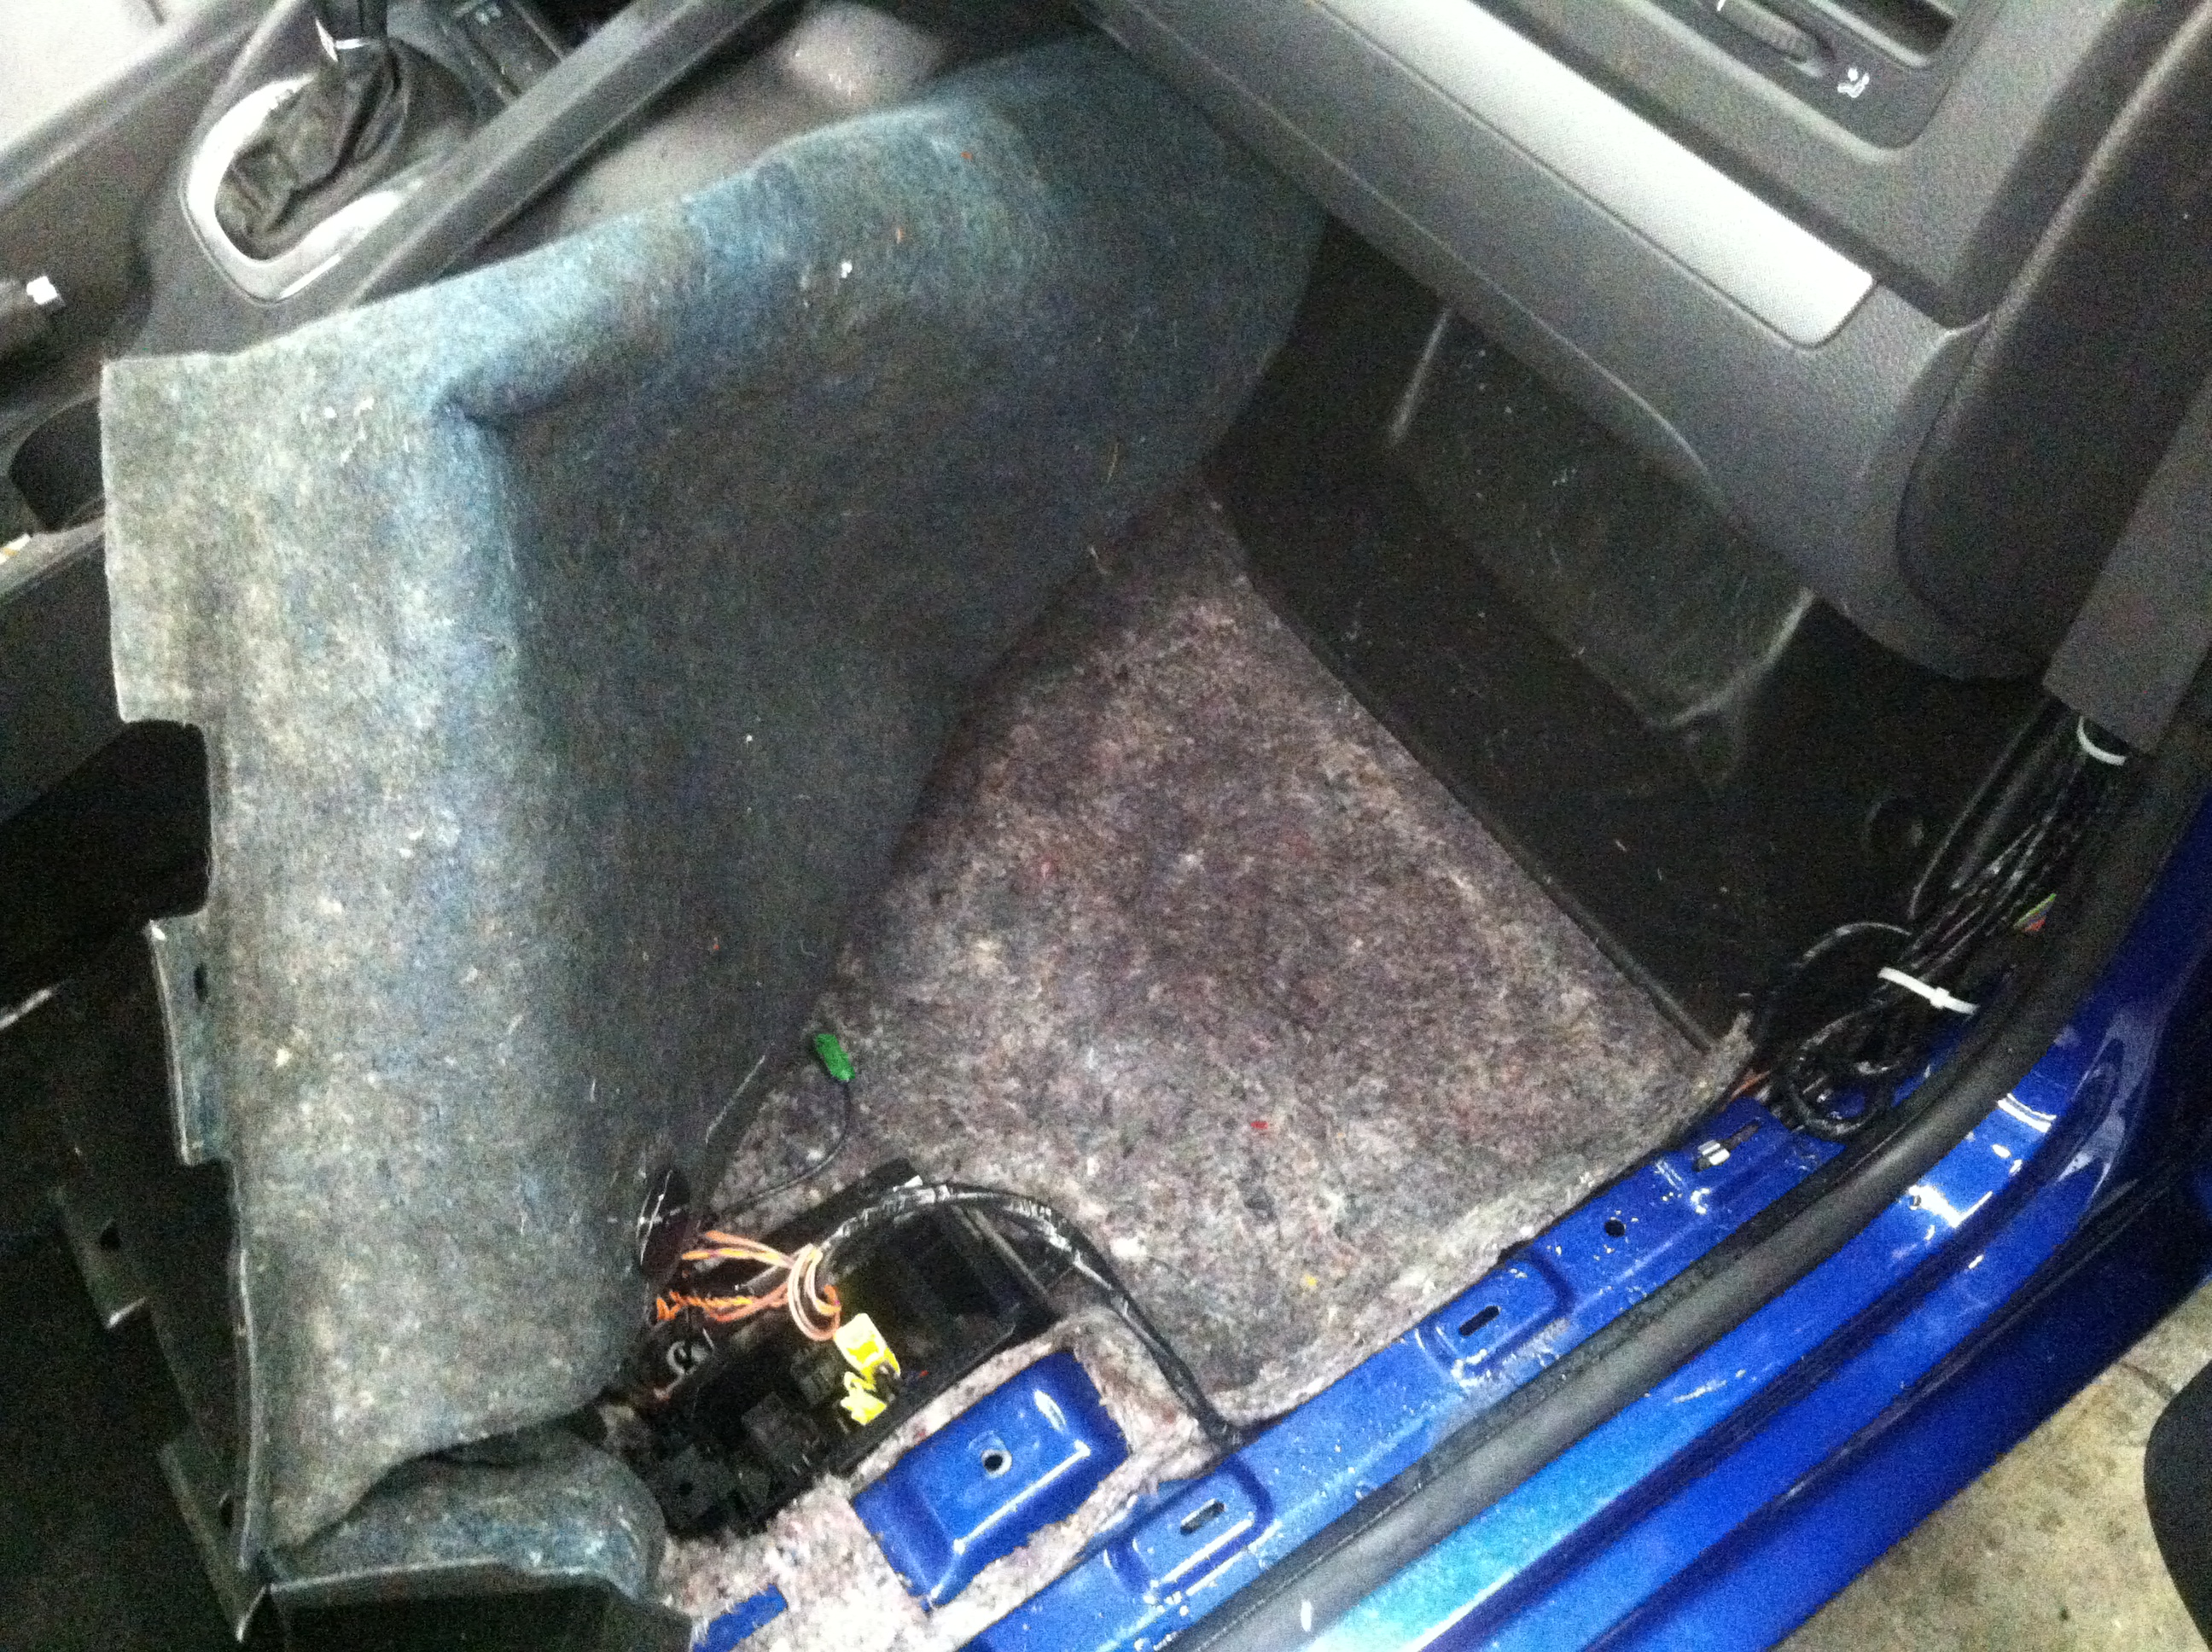 detailing marvelous damage of auto interior richmond car pool water cleaning detail